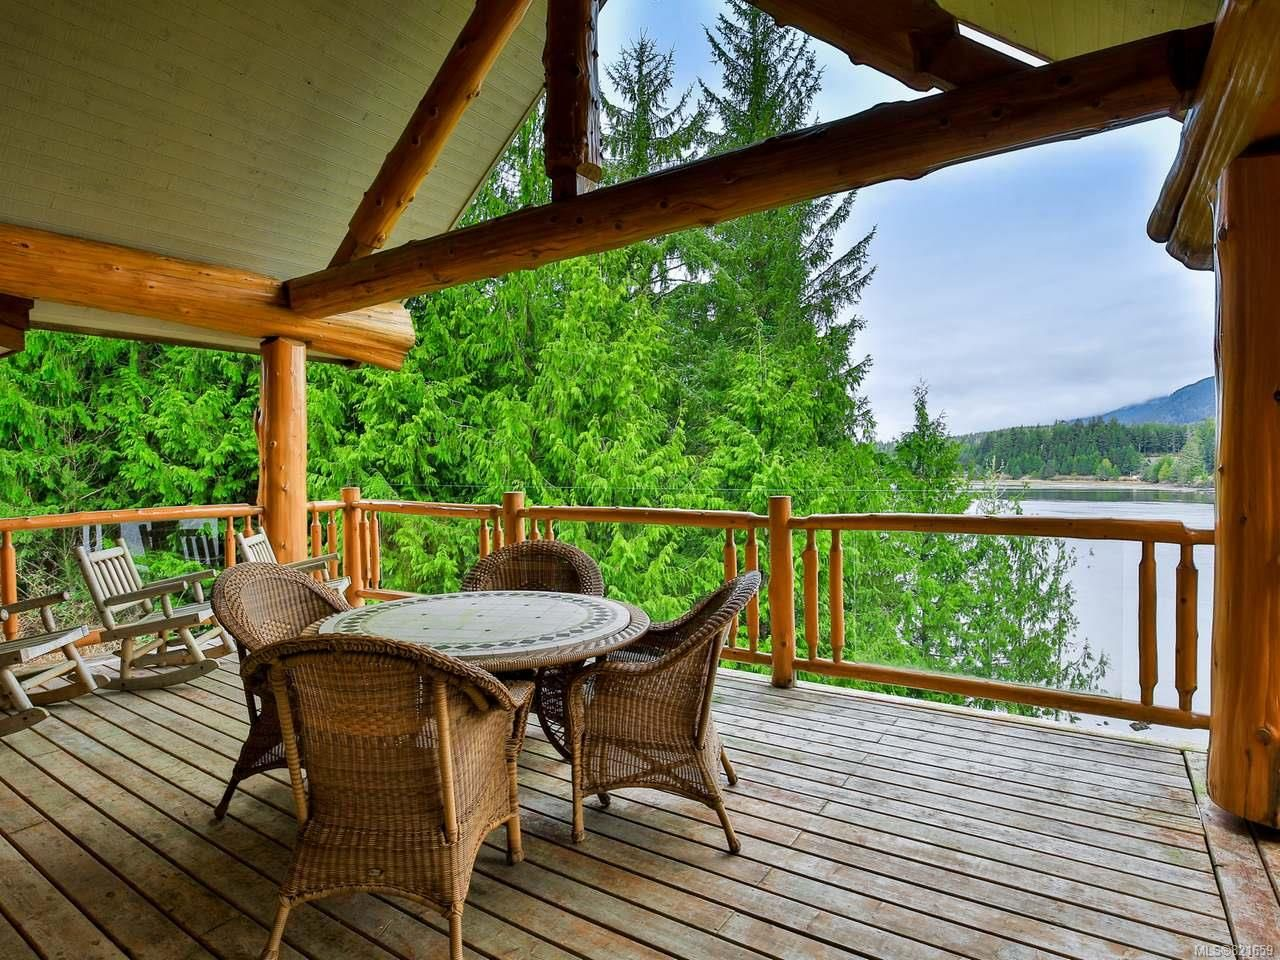 Photo 40: Photos: 1049 Helen Rd in UCLUELET: PA Ucluelet House for sale (Port Alberni)  : MLS®# 821659